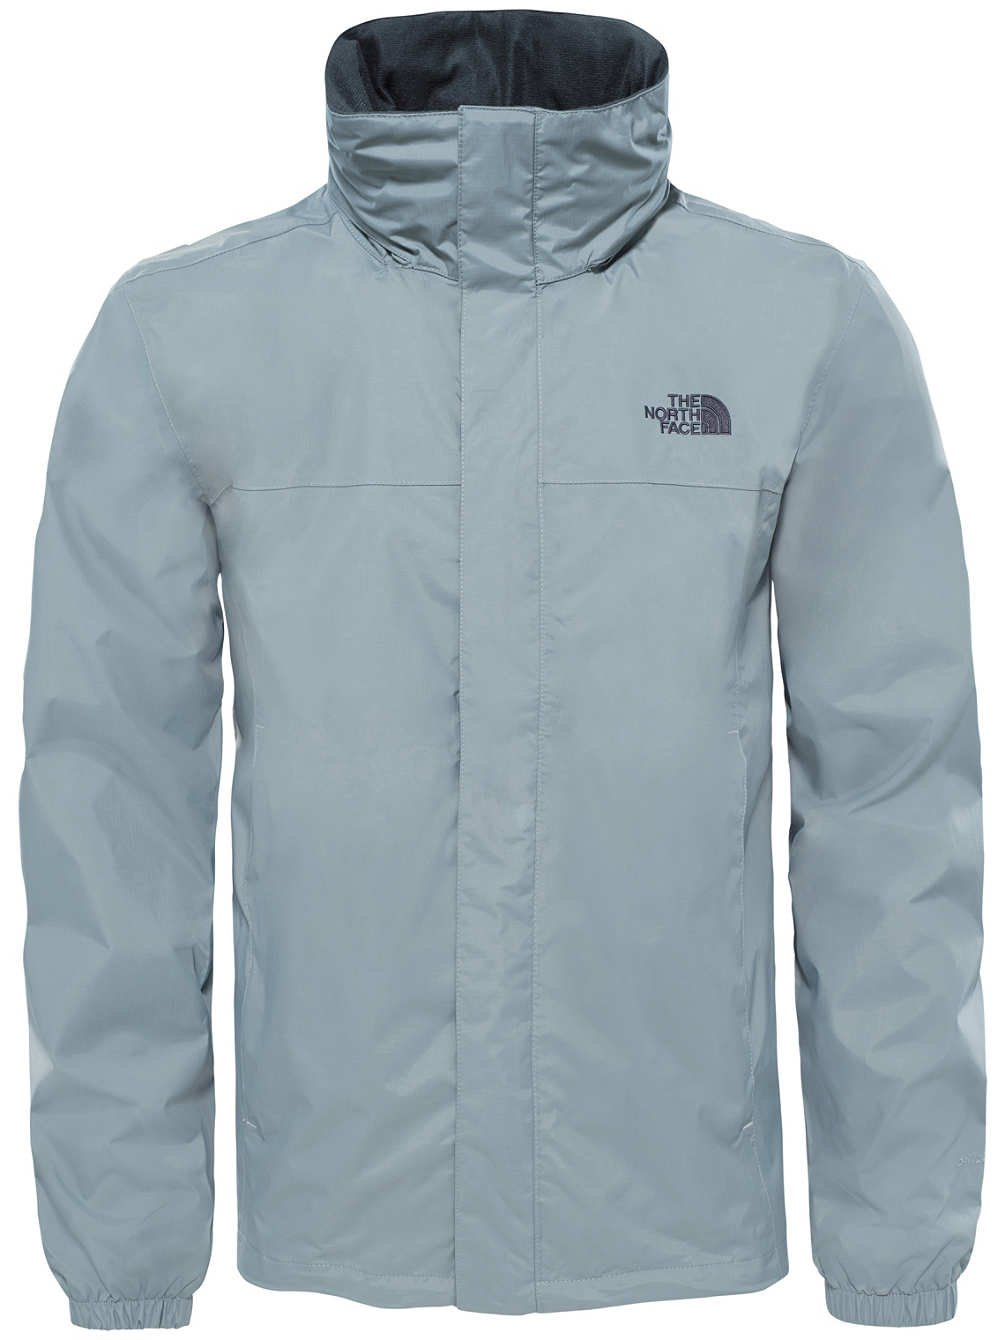 The North Face Resolve 2 メンズジャケット B01LWX3QKB Mサイズ|Monument Grey/Asphalt Grey Monument Grey/Asphalt Grey Mサイズ